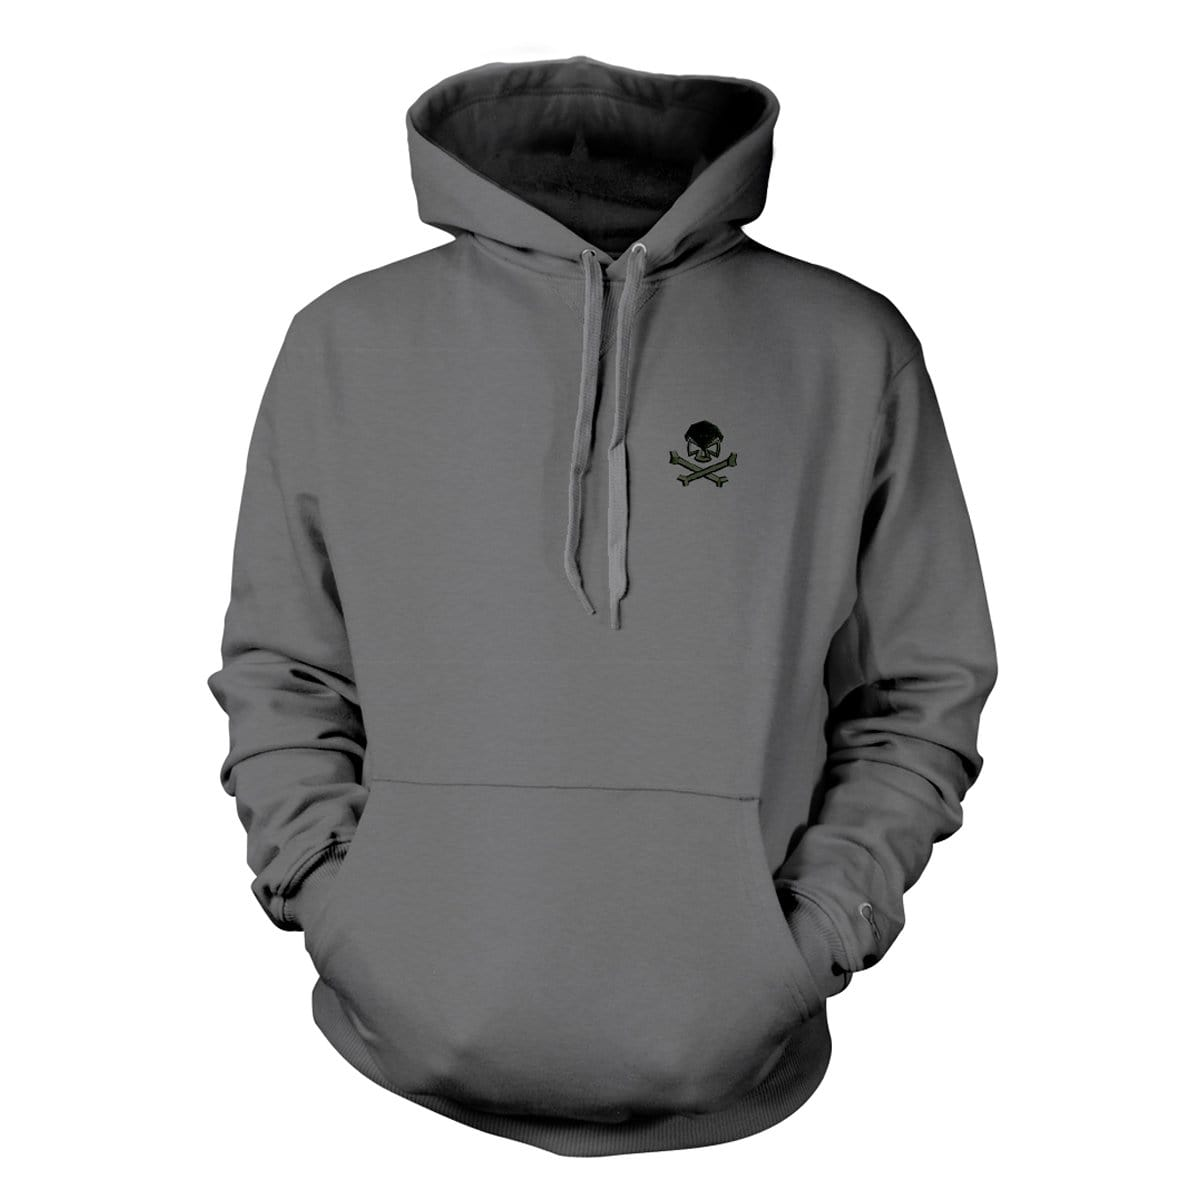 Skull & Bones Hoodie (Embroidered) - Grey/Black - Hoodies - Pipe Hitters Union